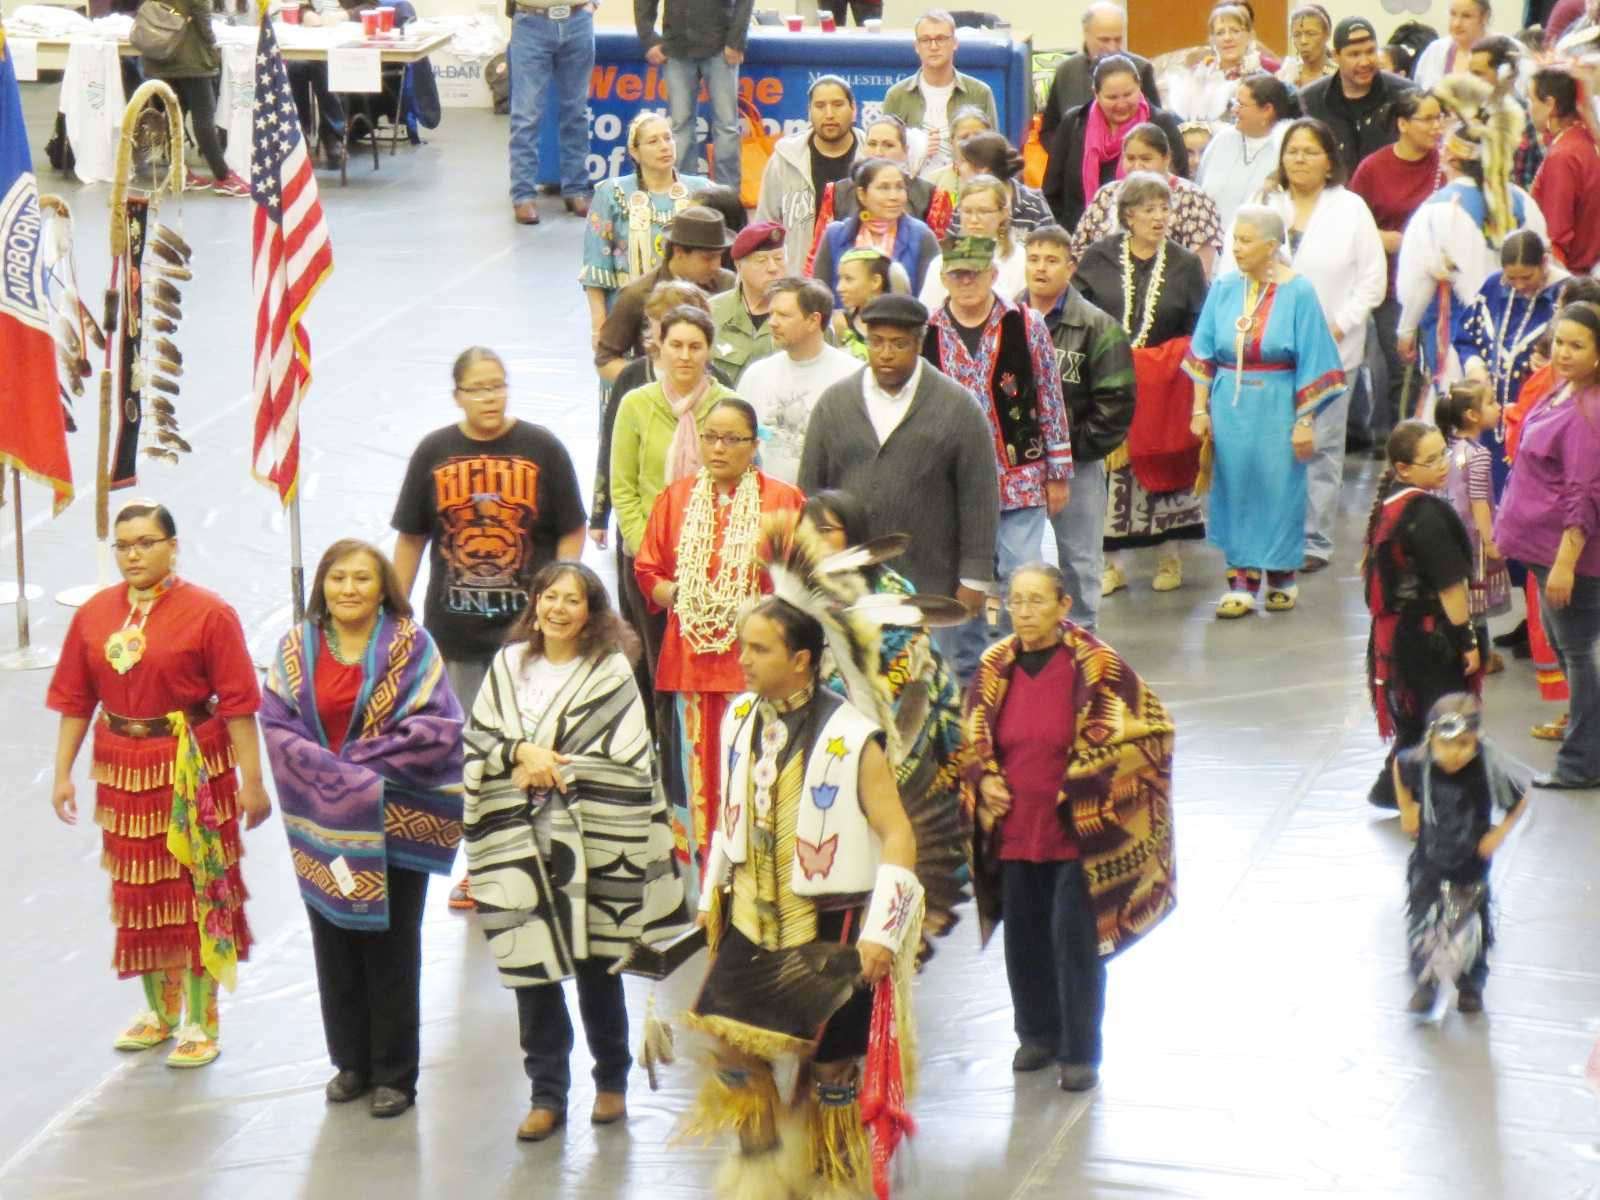 P.I.P.E. stages first pow-wow at Macalester in two decades